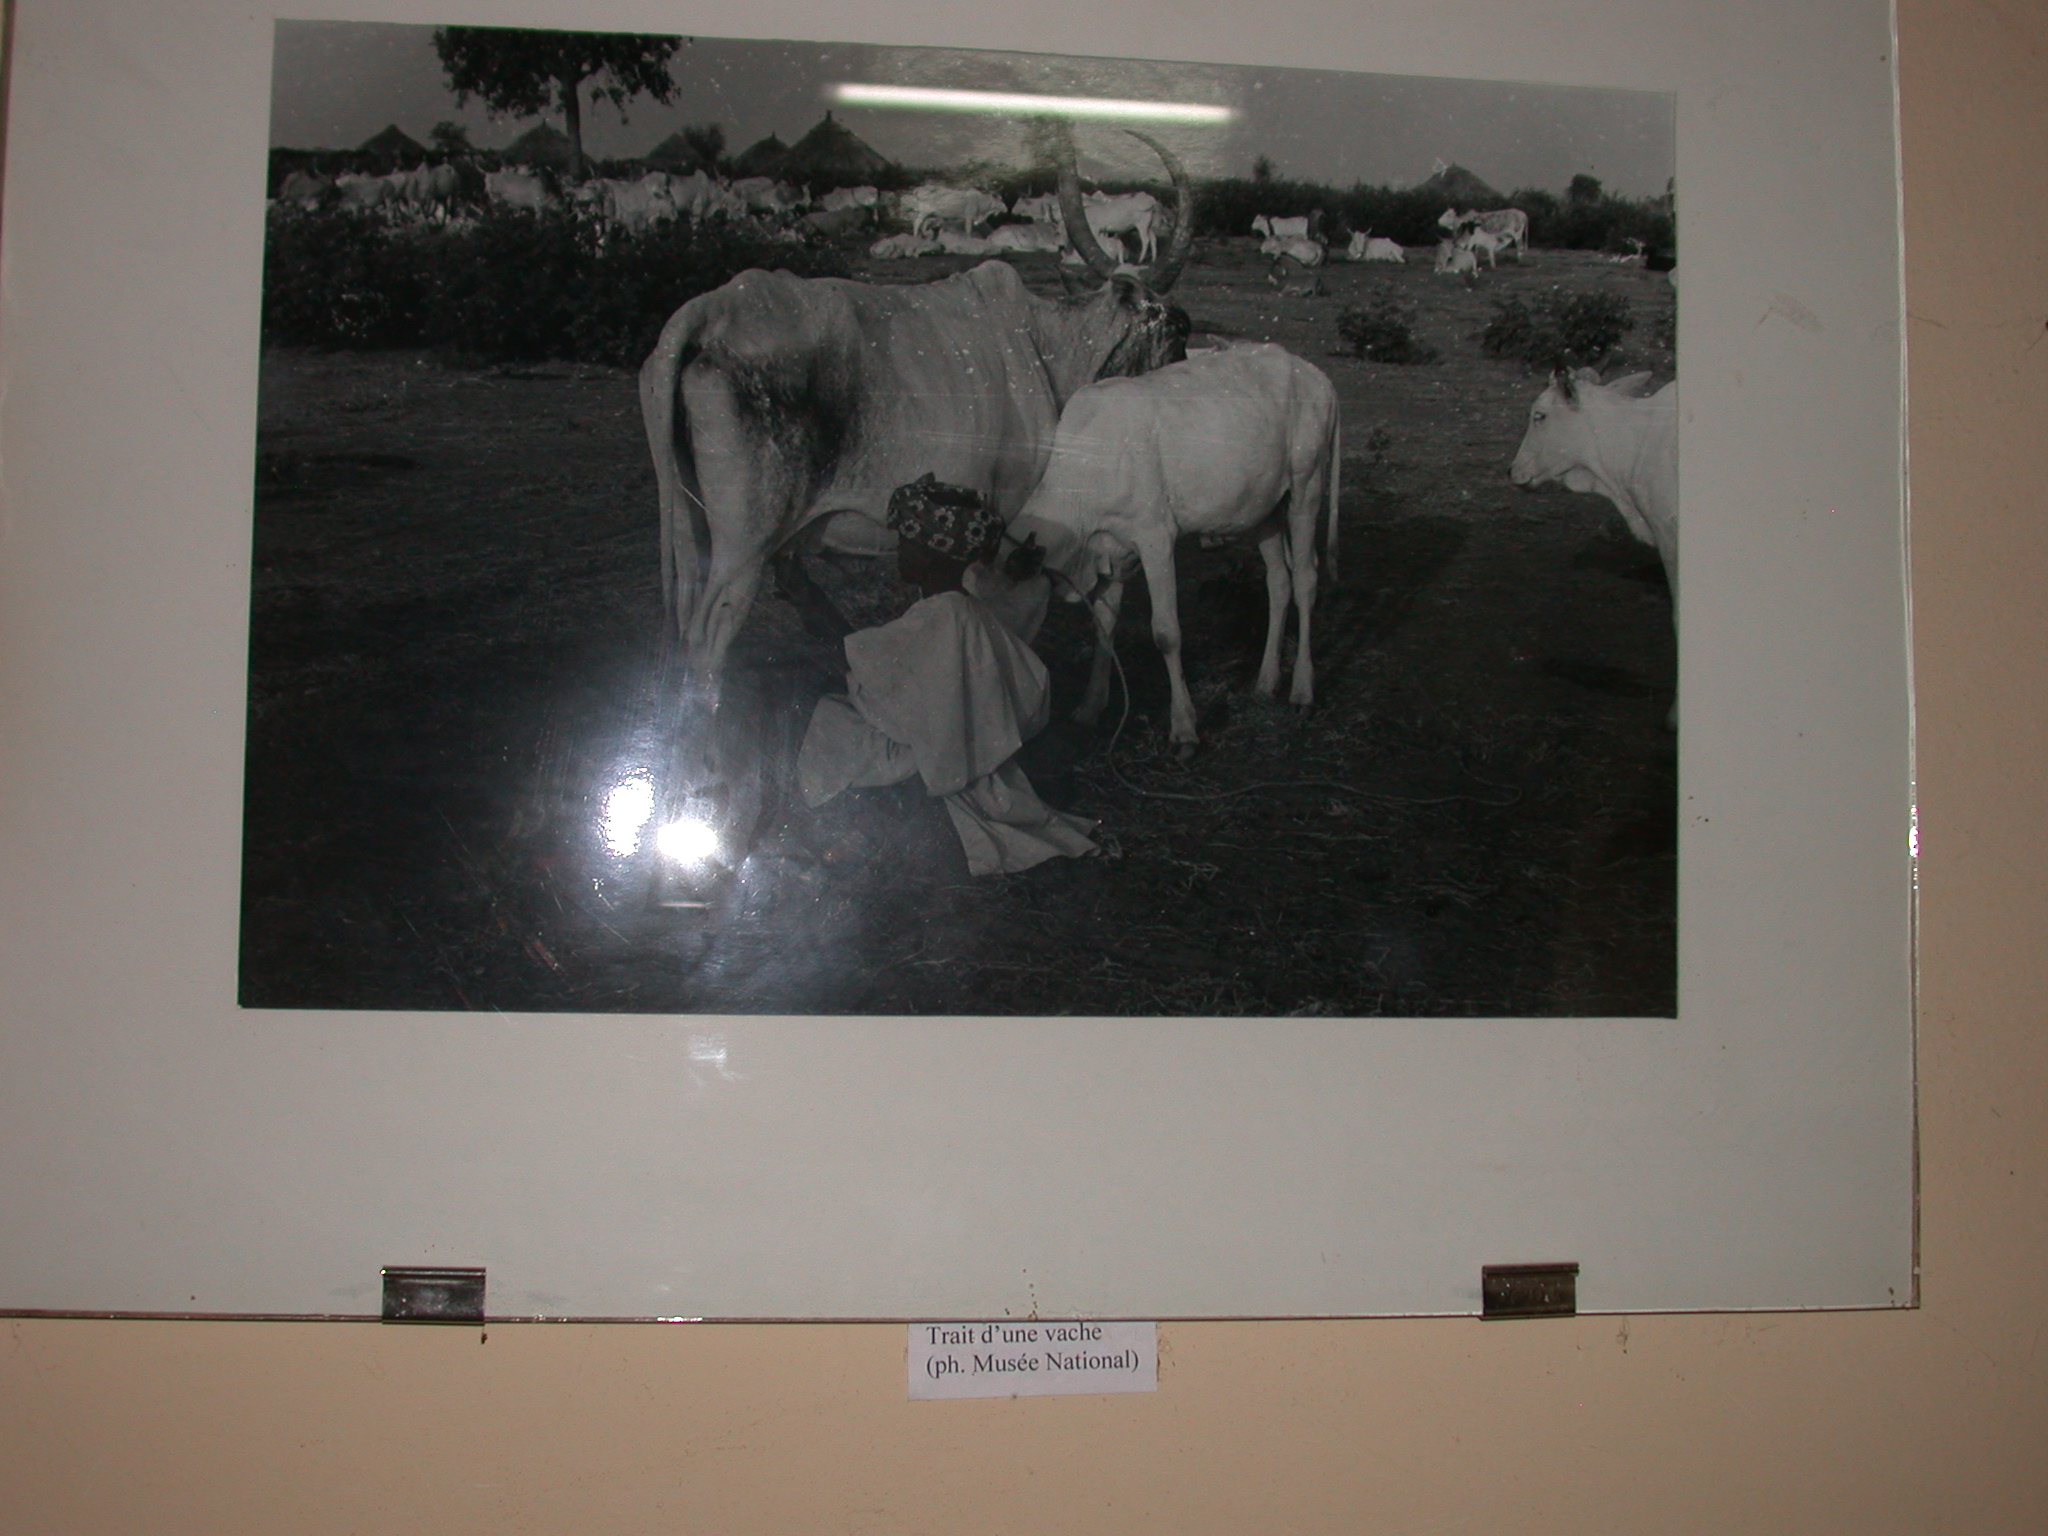 Photo of Milking a Cow, Timbuktu Ethnological Museum, Timbuktu, Mali